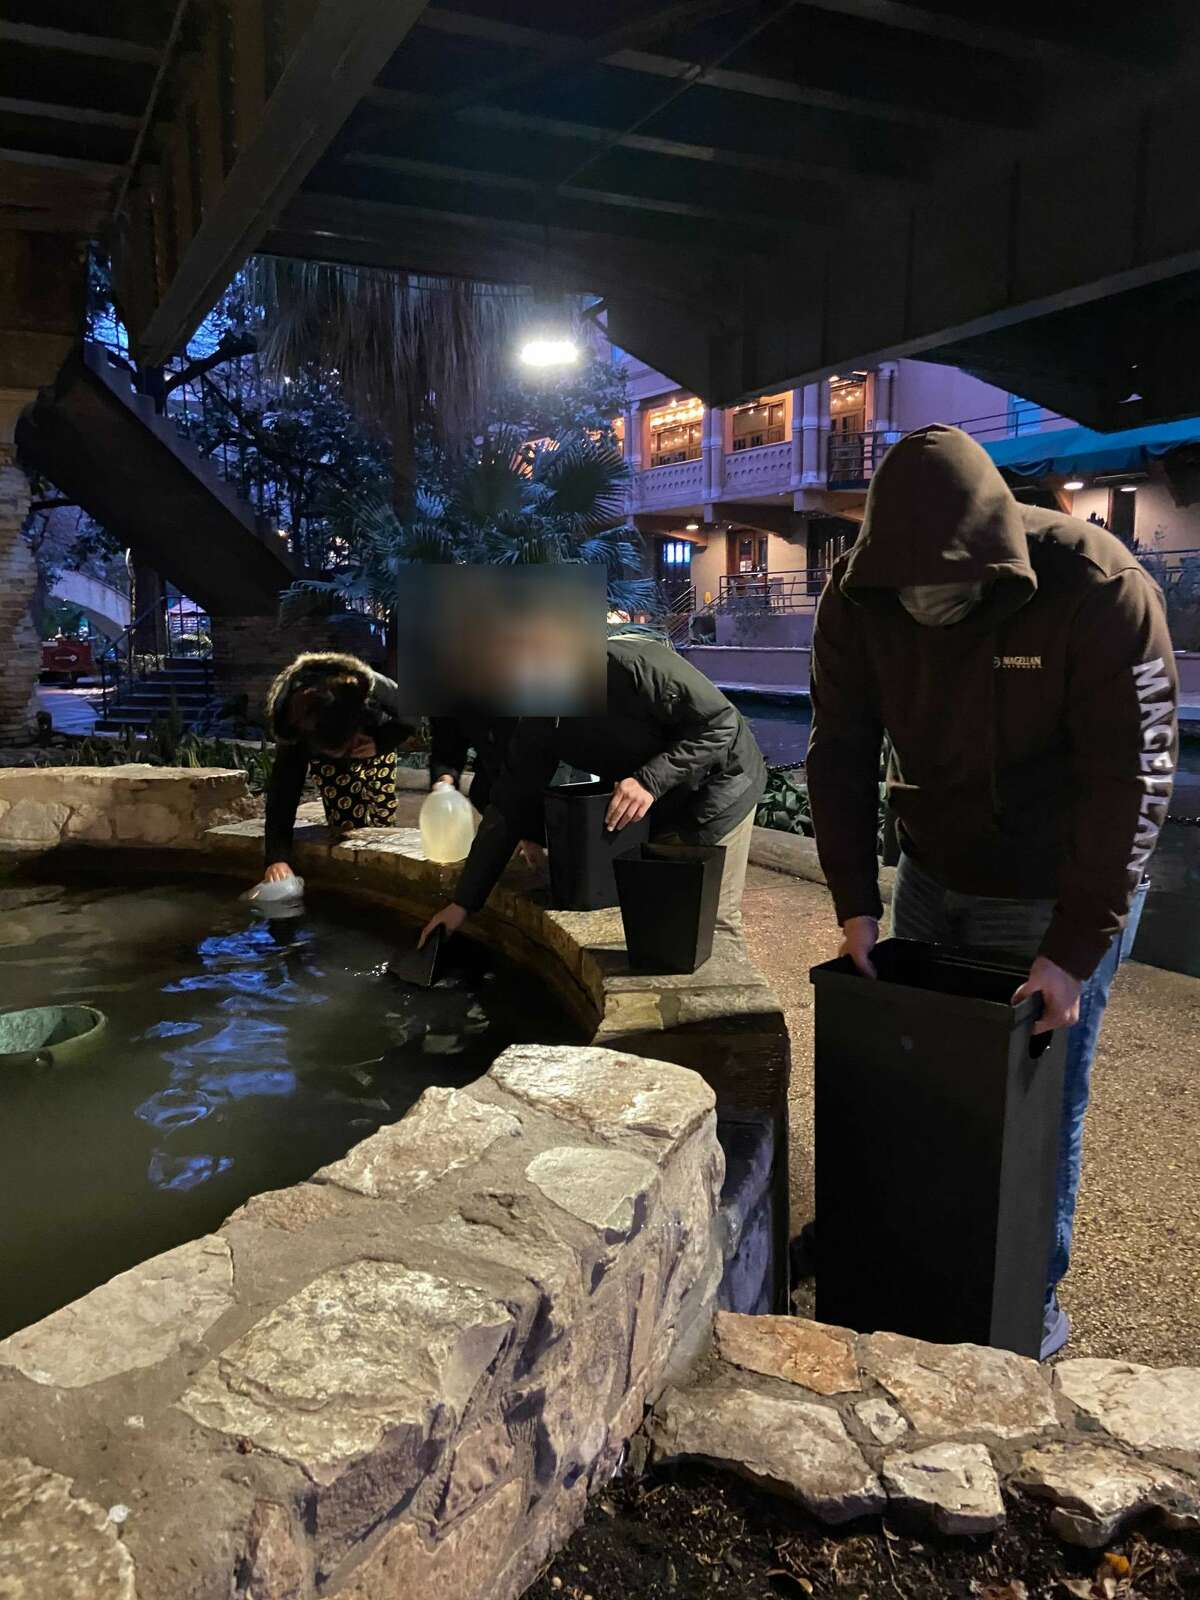 Downtown guests resorted to collecting San Antonio River water amid the utility issues plaguing Texas in the wake of winter weather.